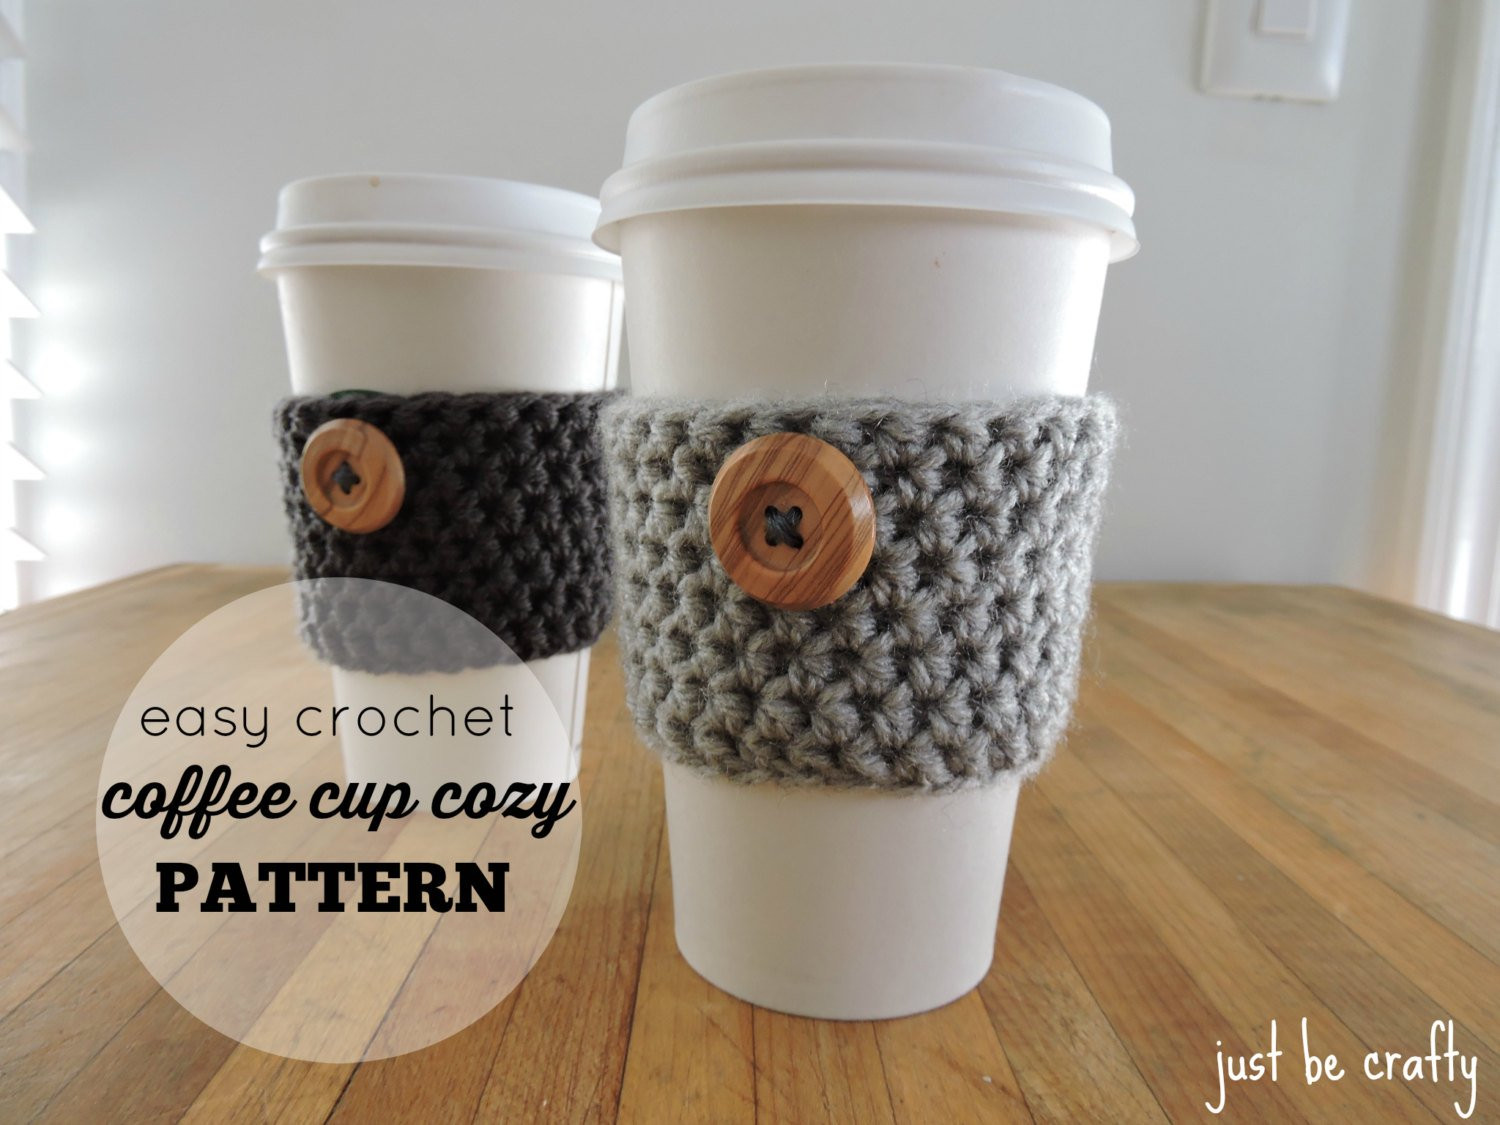 Crochet Coffee Cup Cozy Inspirational Crochet Coffee Cup Cozy Pattern Pdf Download Coffee Cup Cozy Of Crochet Coffee Cup Cozy Fresh 20 Cool Crochet Coffee Cozy Ideas & Tutorials Hative